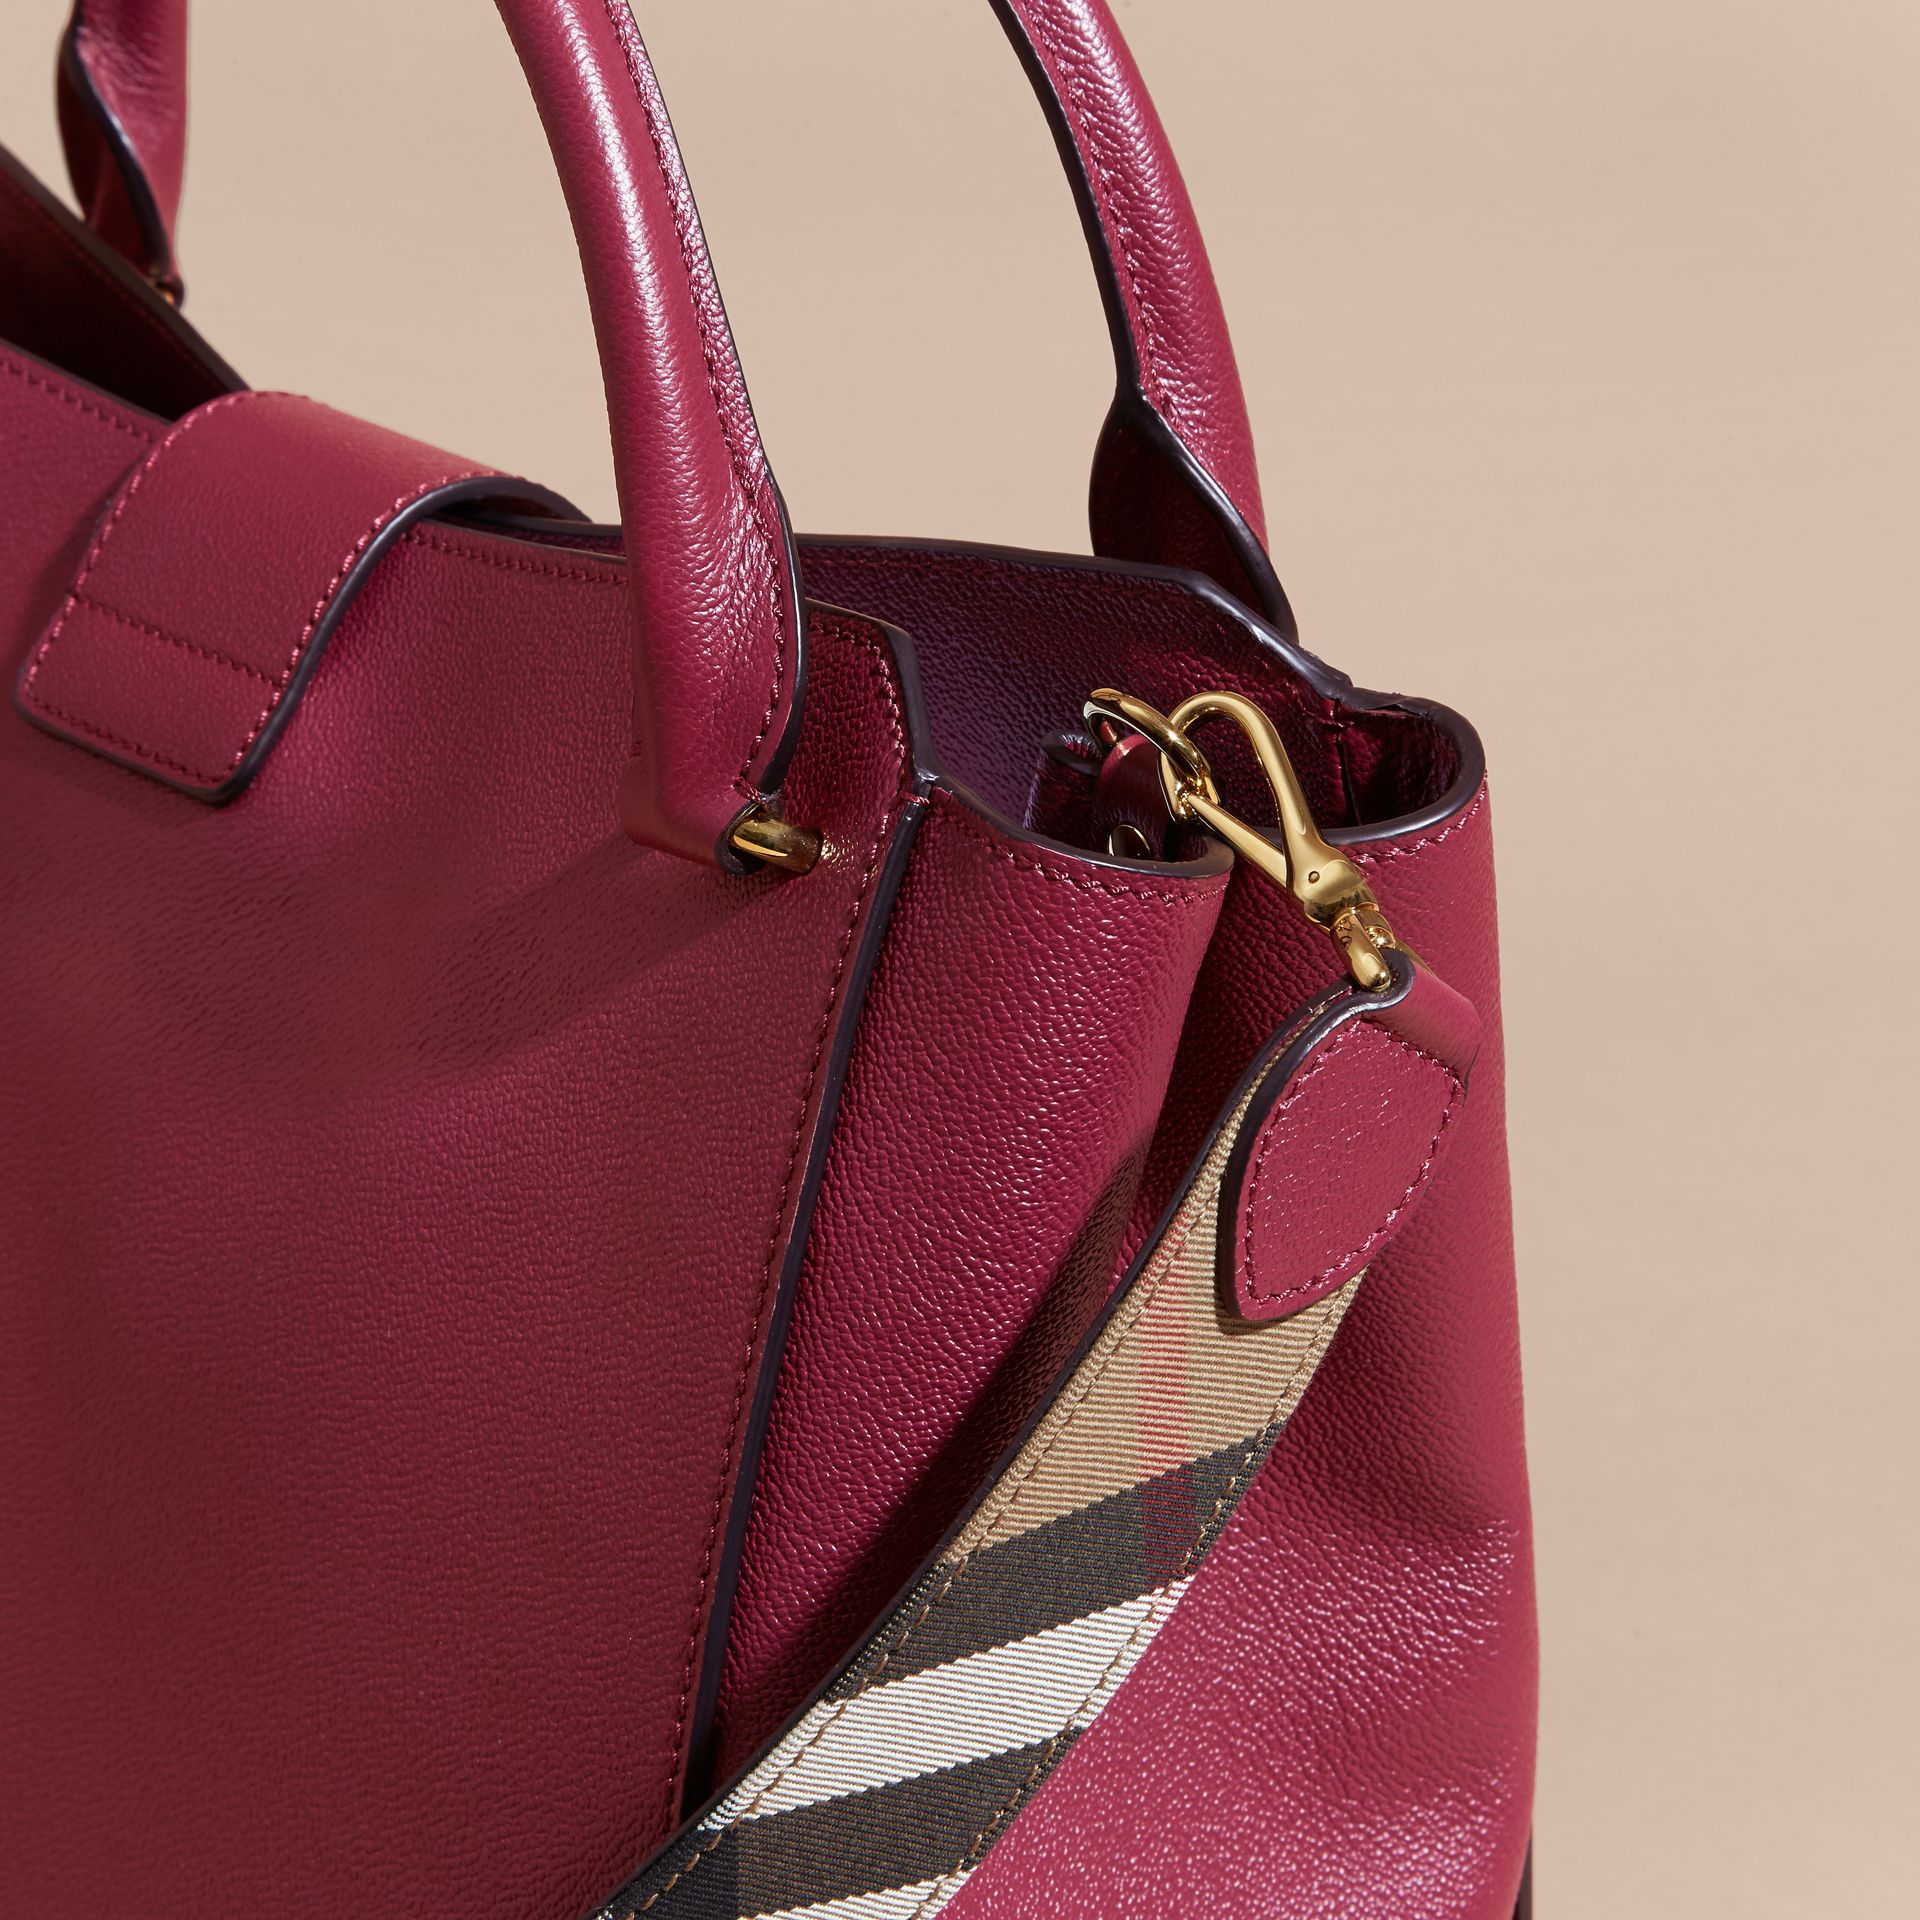 The Large Buckle Tote in Grainy Leather in Dark Plum - Women | Burberry - gallery image 7